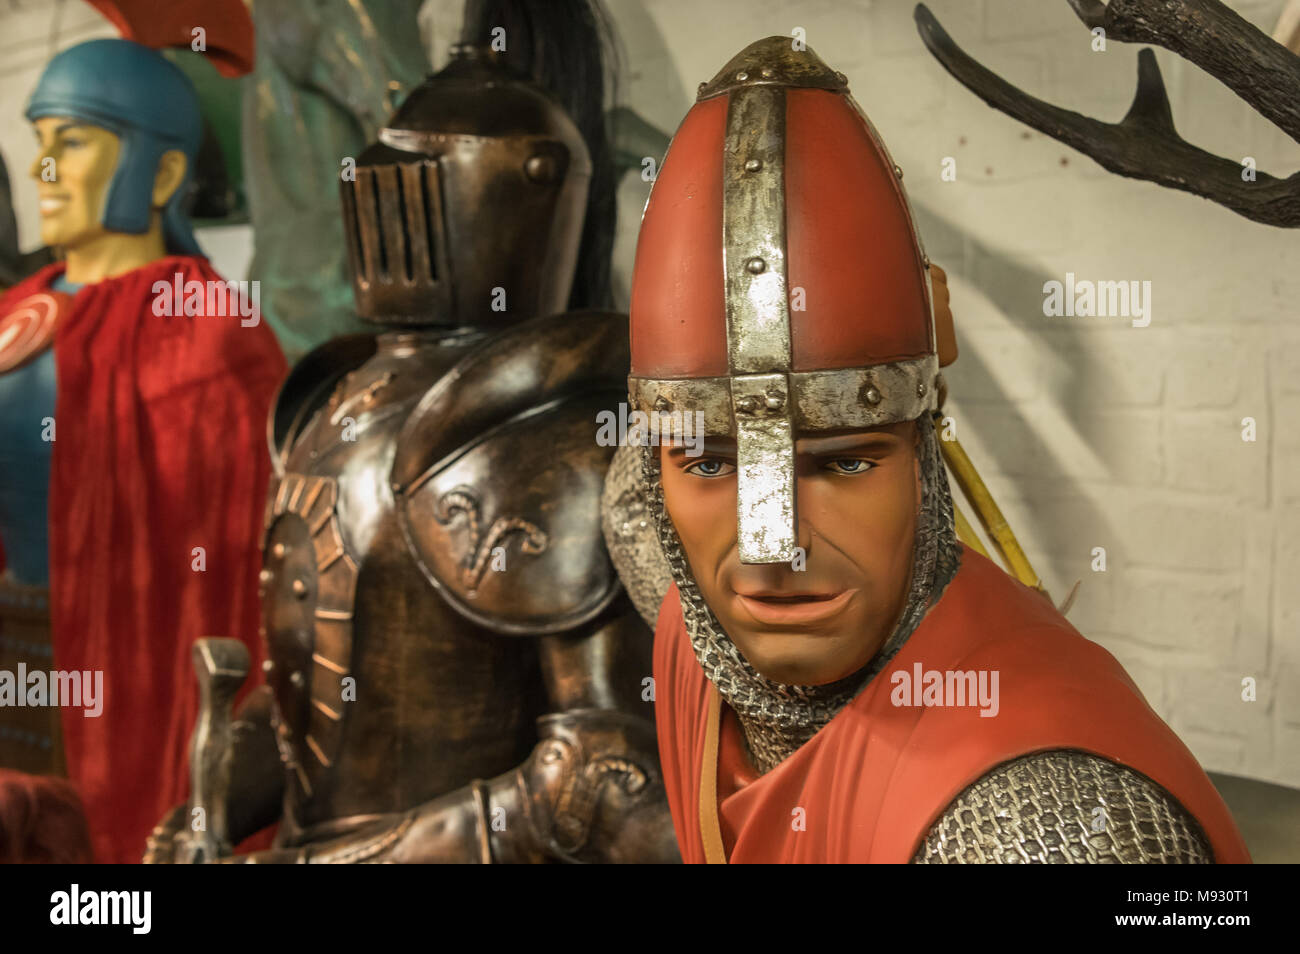 Life size models made by The Jolly Roger, Bovey Tracey, Devon - Stock Image